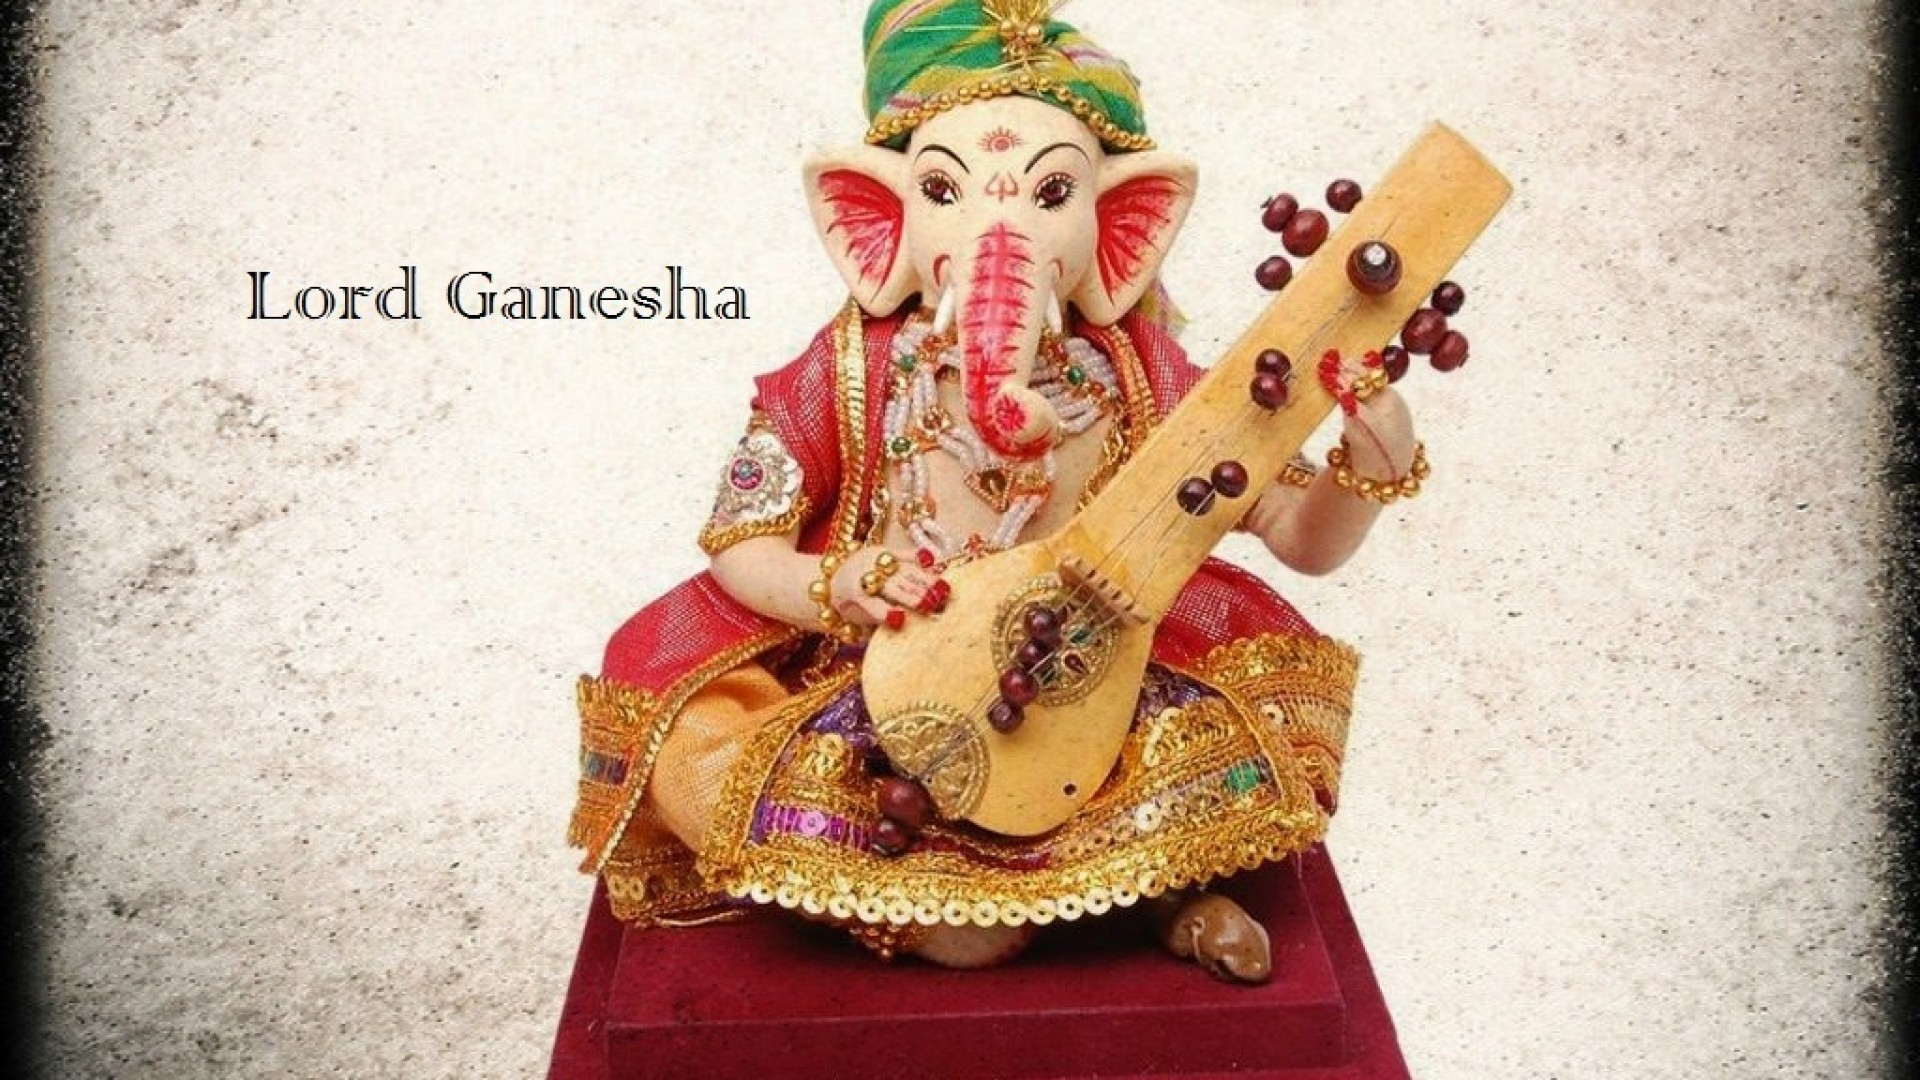 Hd wallpaper ganesh - Ganesh Images Lord Ganesh Photos Pics Hd Wallpapers Download